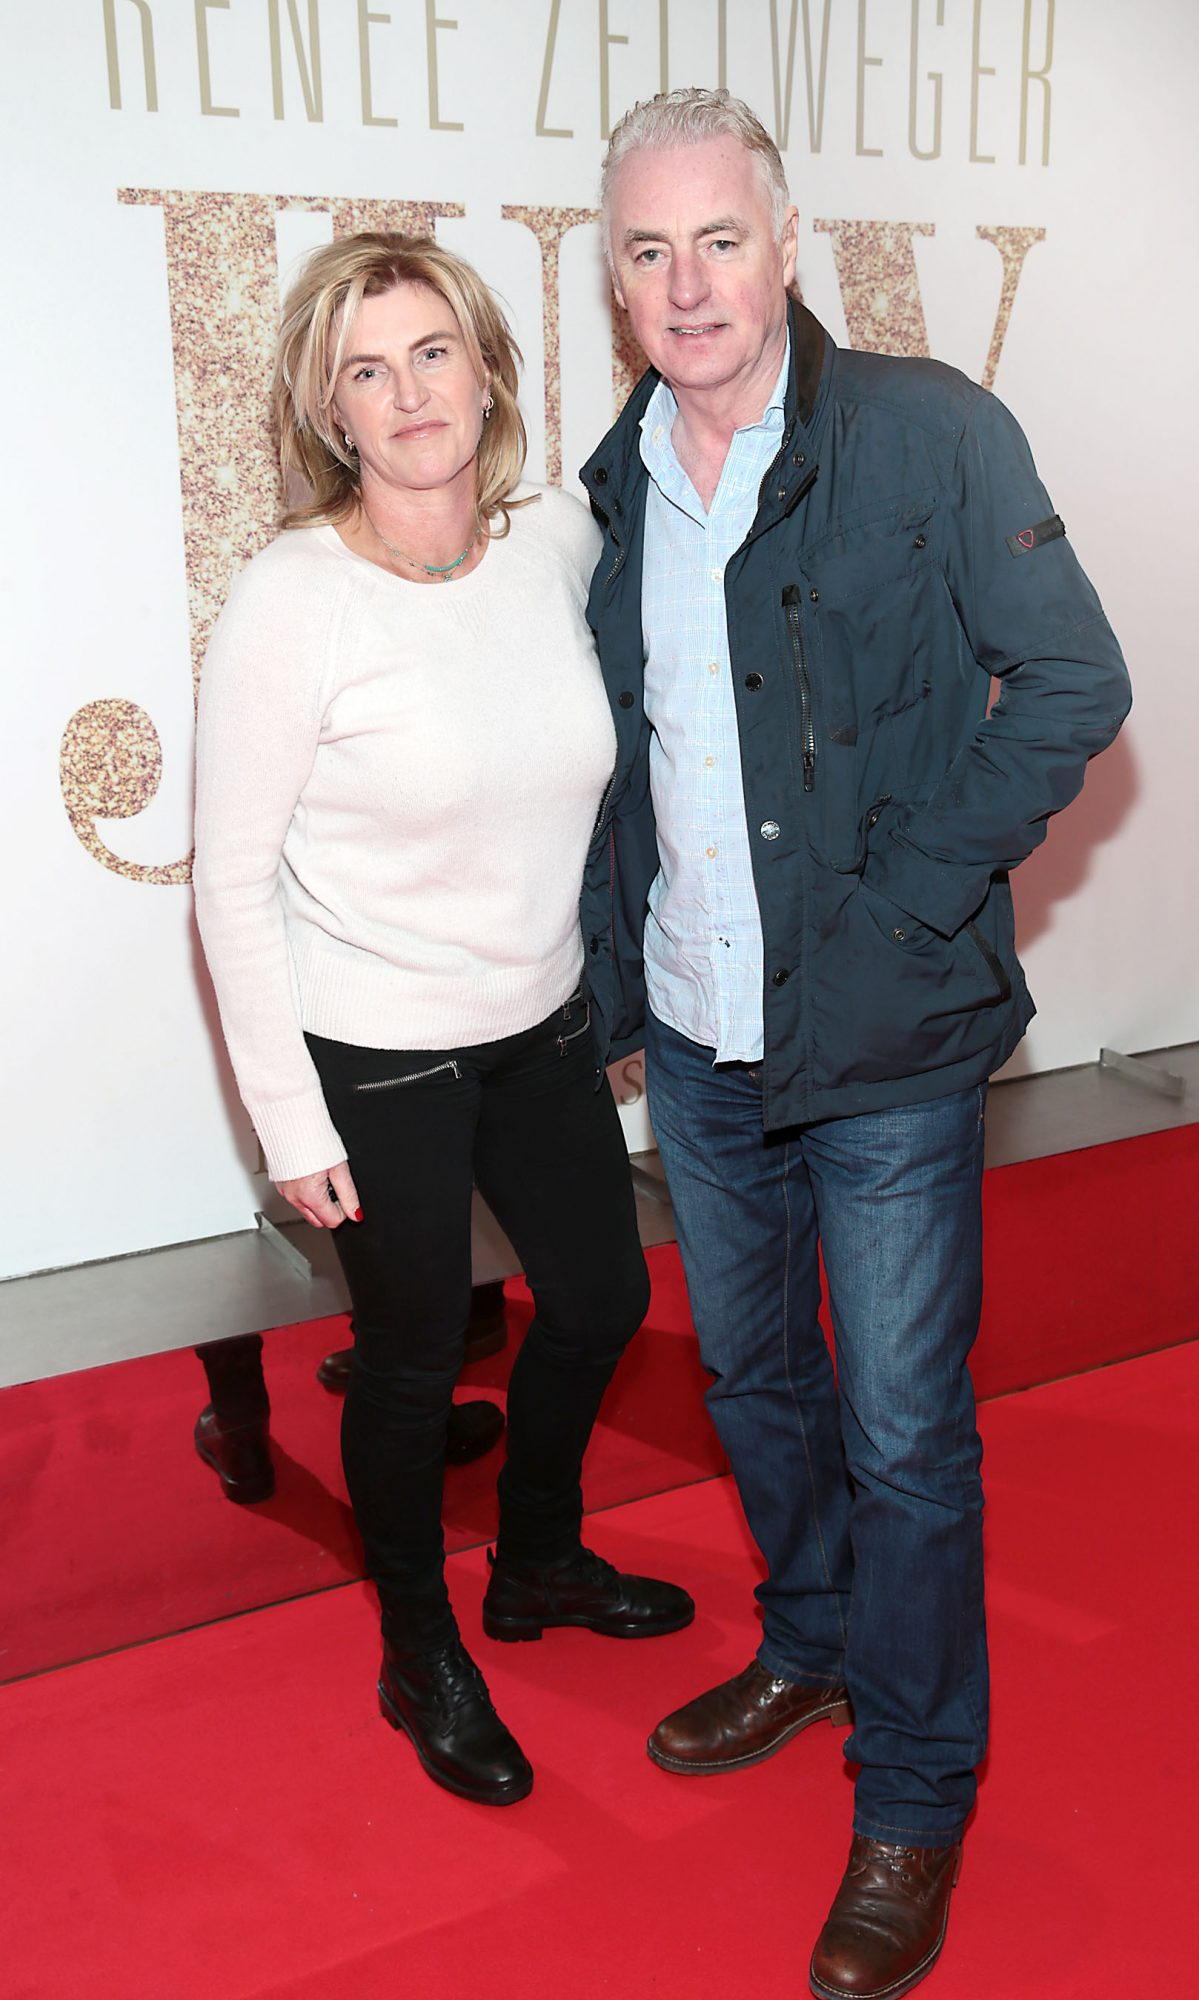 Rosie dawson Campbell and Dave Fanning pictured at the Irish Premiere of Judy at the Lighthouse Cinema, Dublin.  Pic: Brian McEvoy.